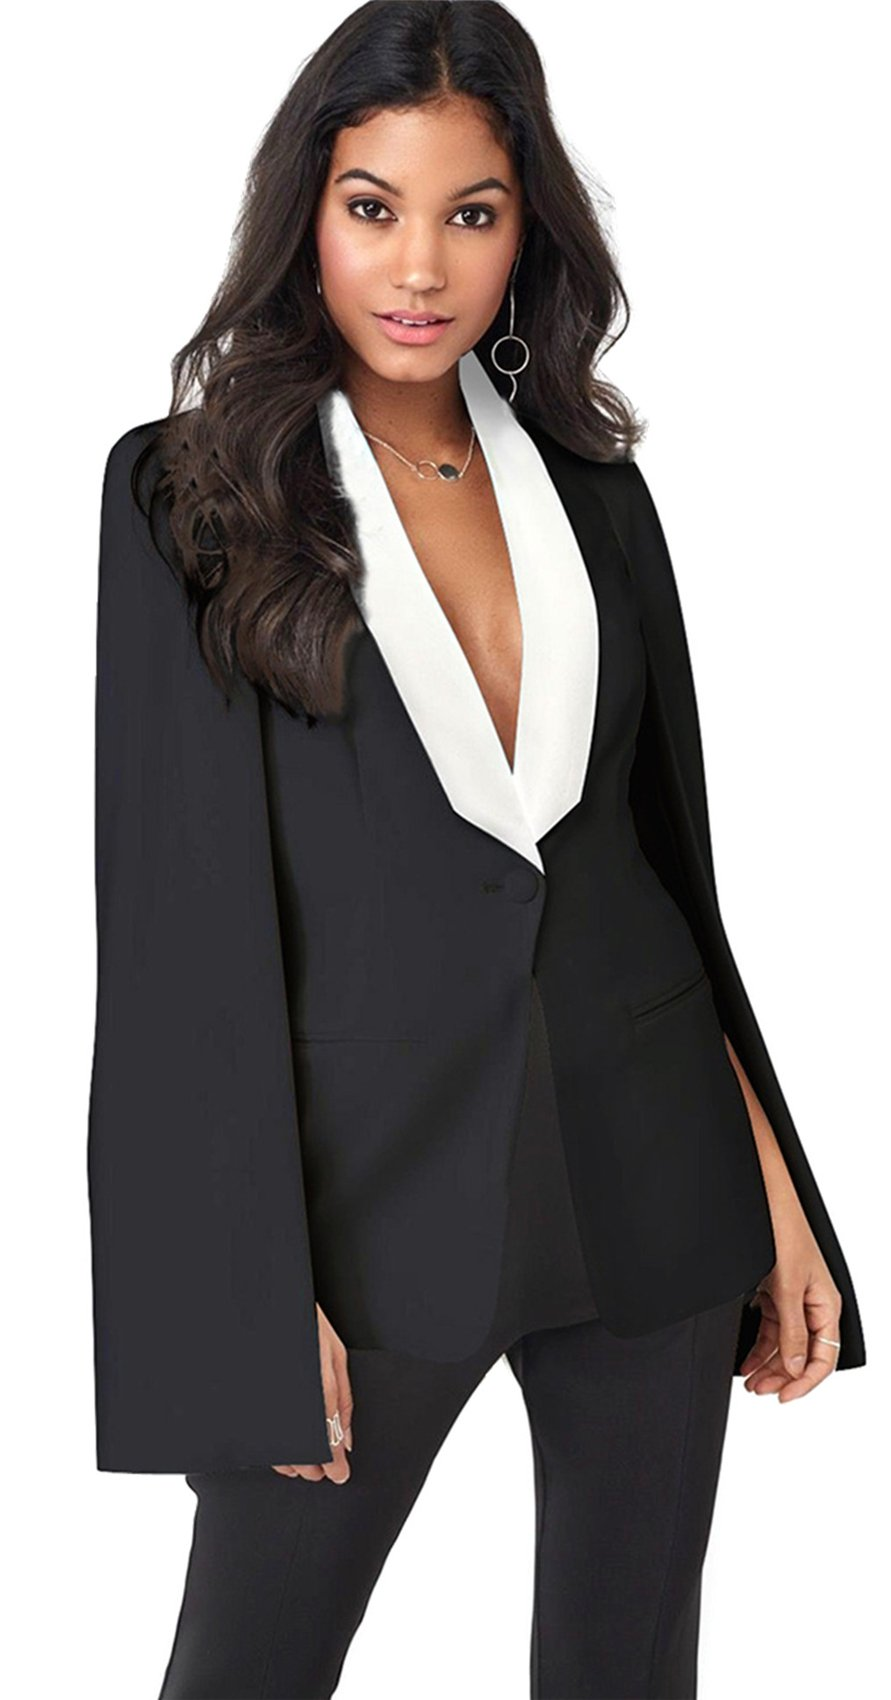 Cloak Poncho Cape Style Split Slit Long Sleeve Deep V Neck One Button Pocket Colorblock Blazer Jacket Top Black L by Arctic Cubic (Image #1)